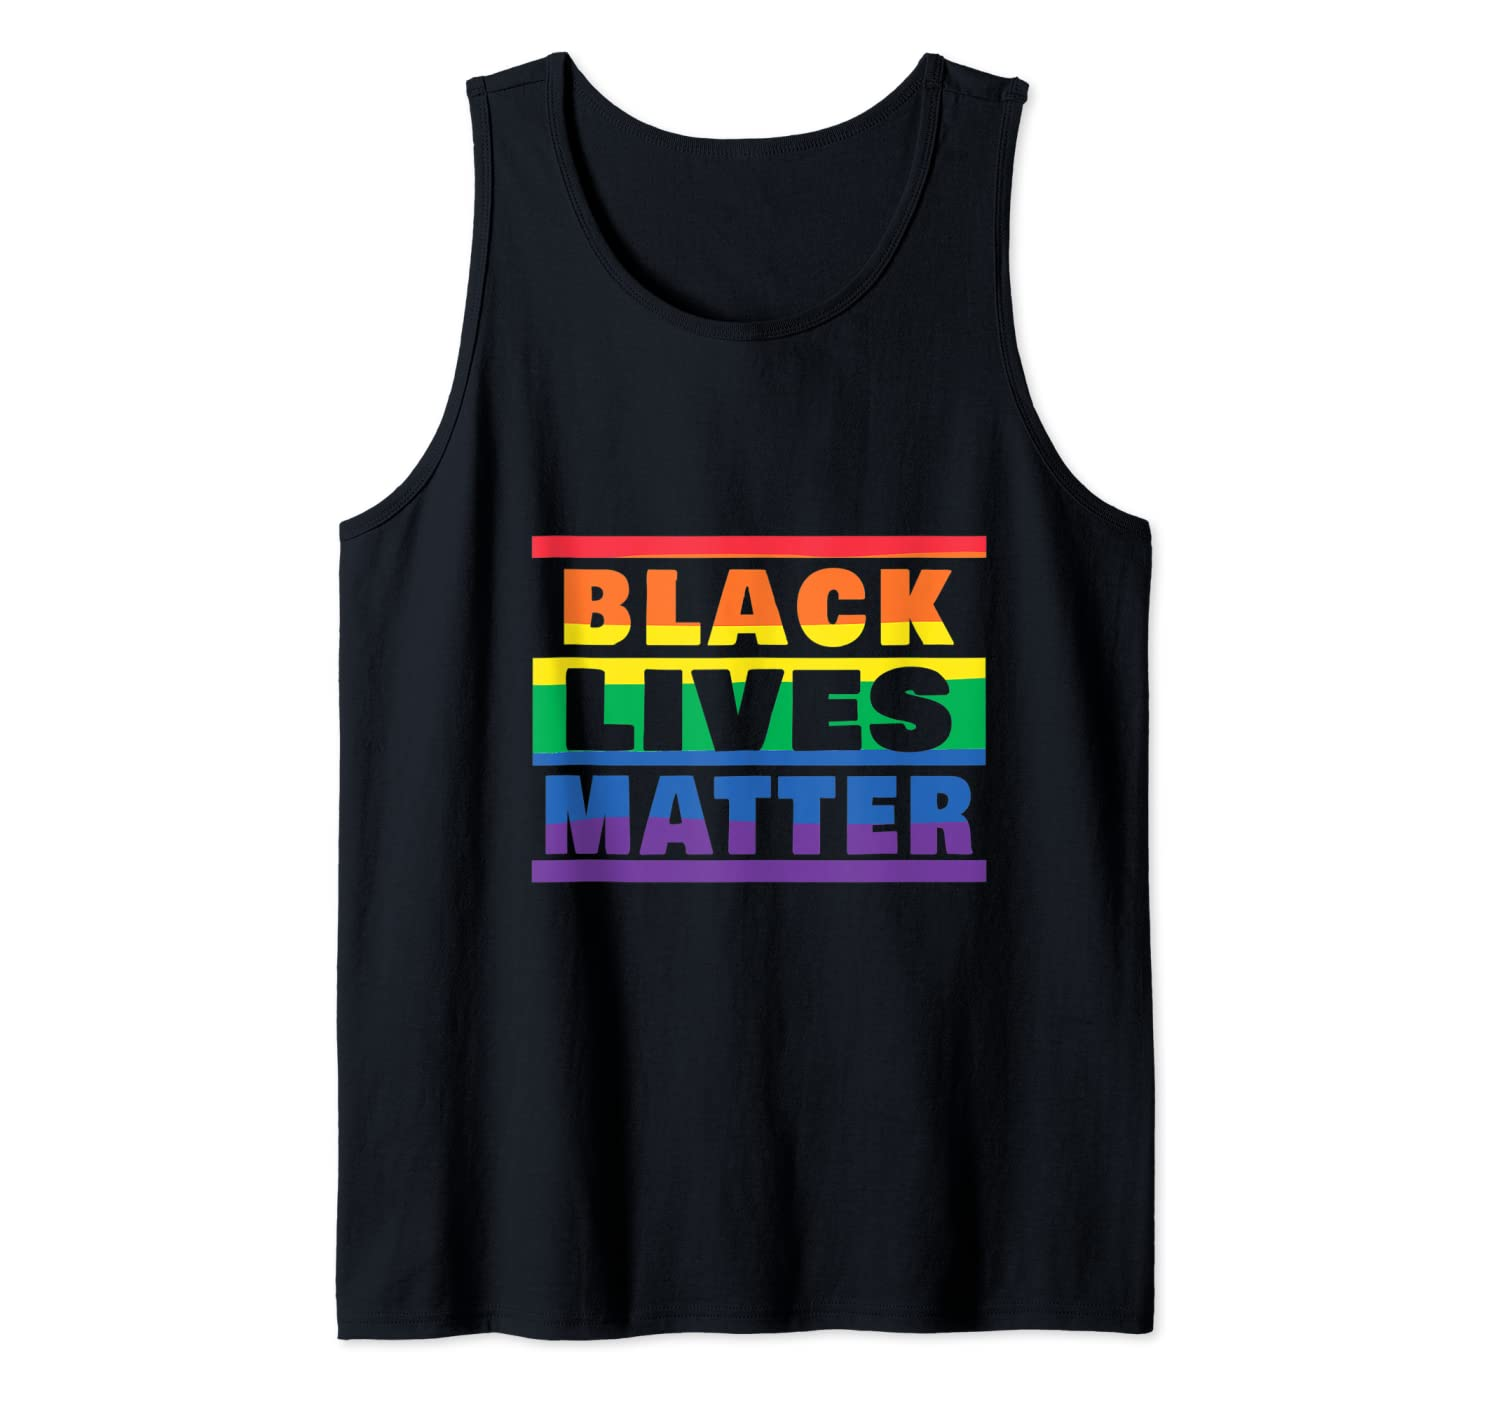 LGBTQ Pride /& Black Lives Matter We March To End Hate 2020 Camiseta sin Mangas